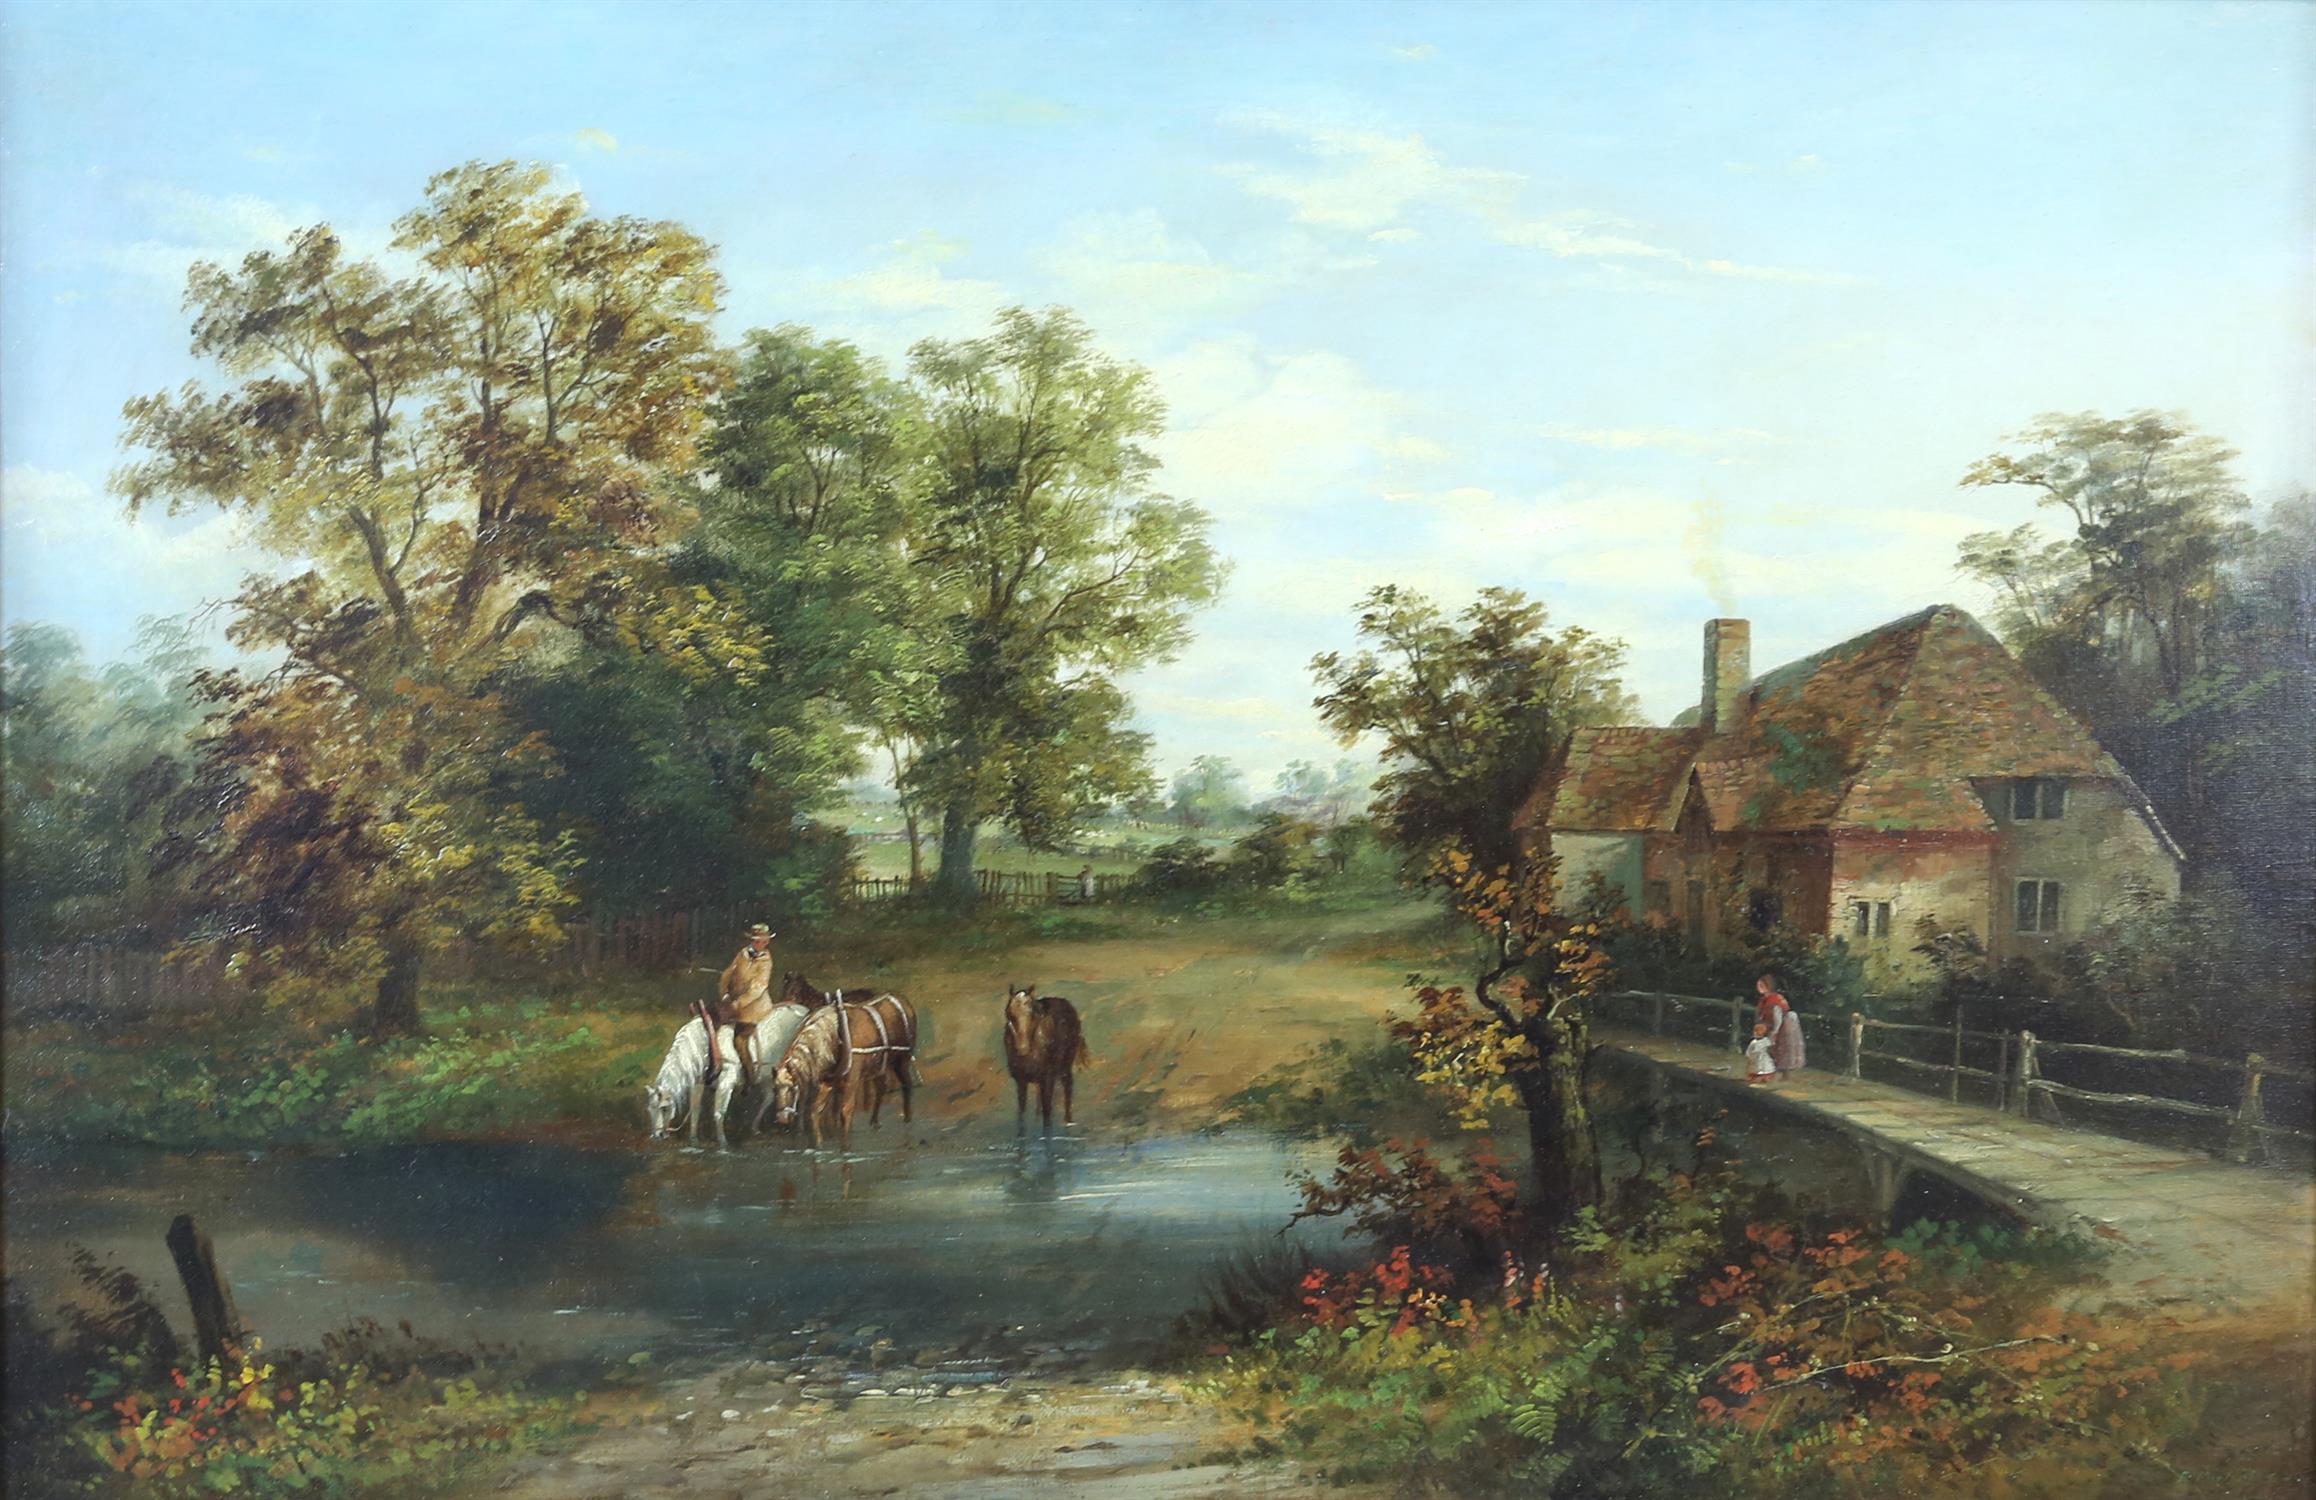 Ellen Partridge, British act. c. 1844 - c.1894, watering horses at a ford, signed, oil on canvas,